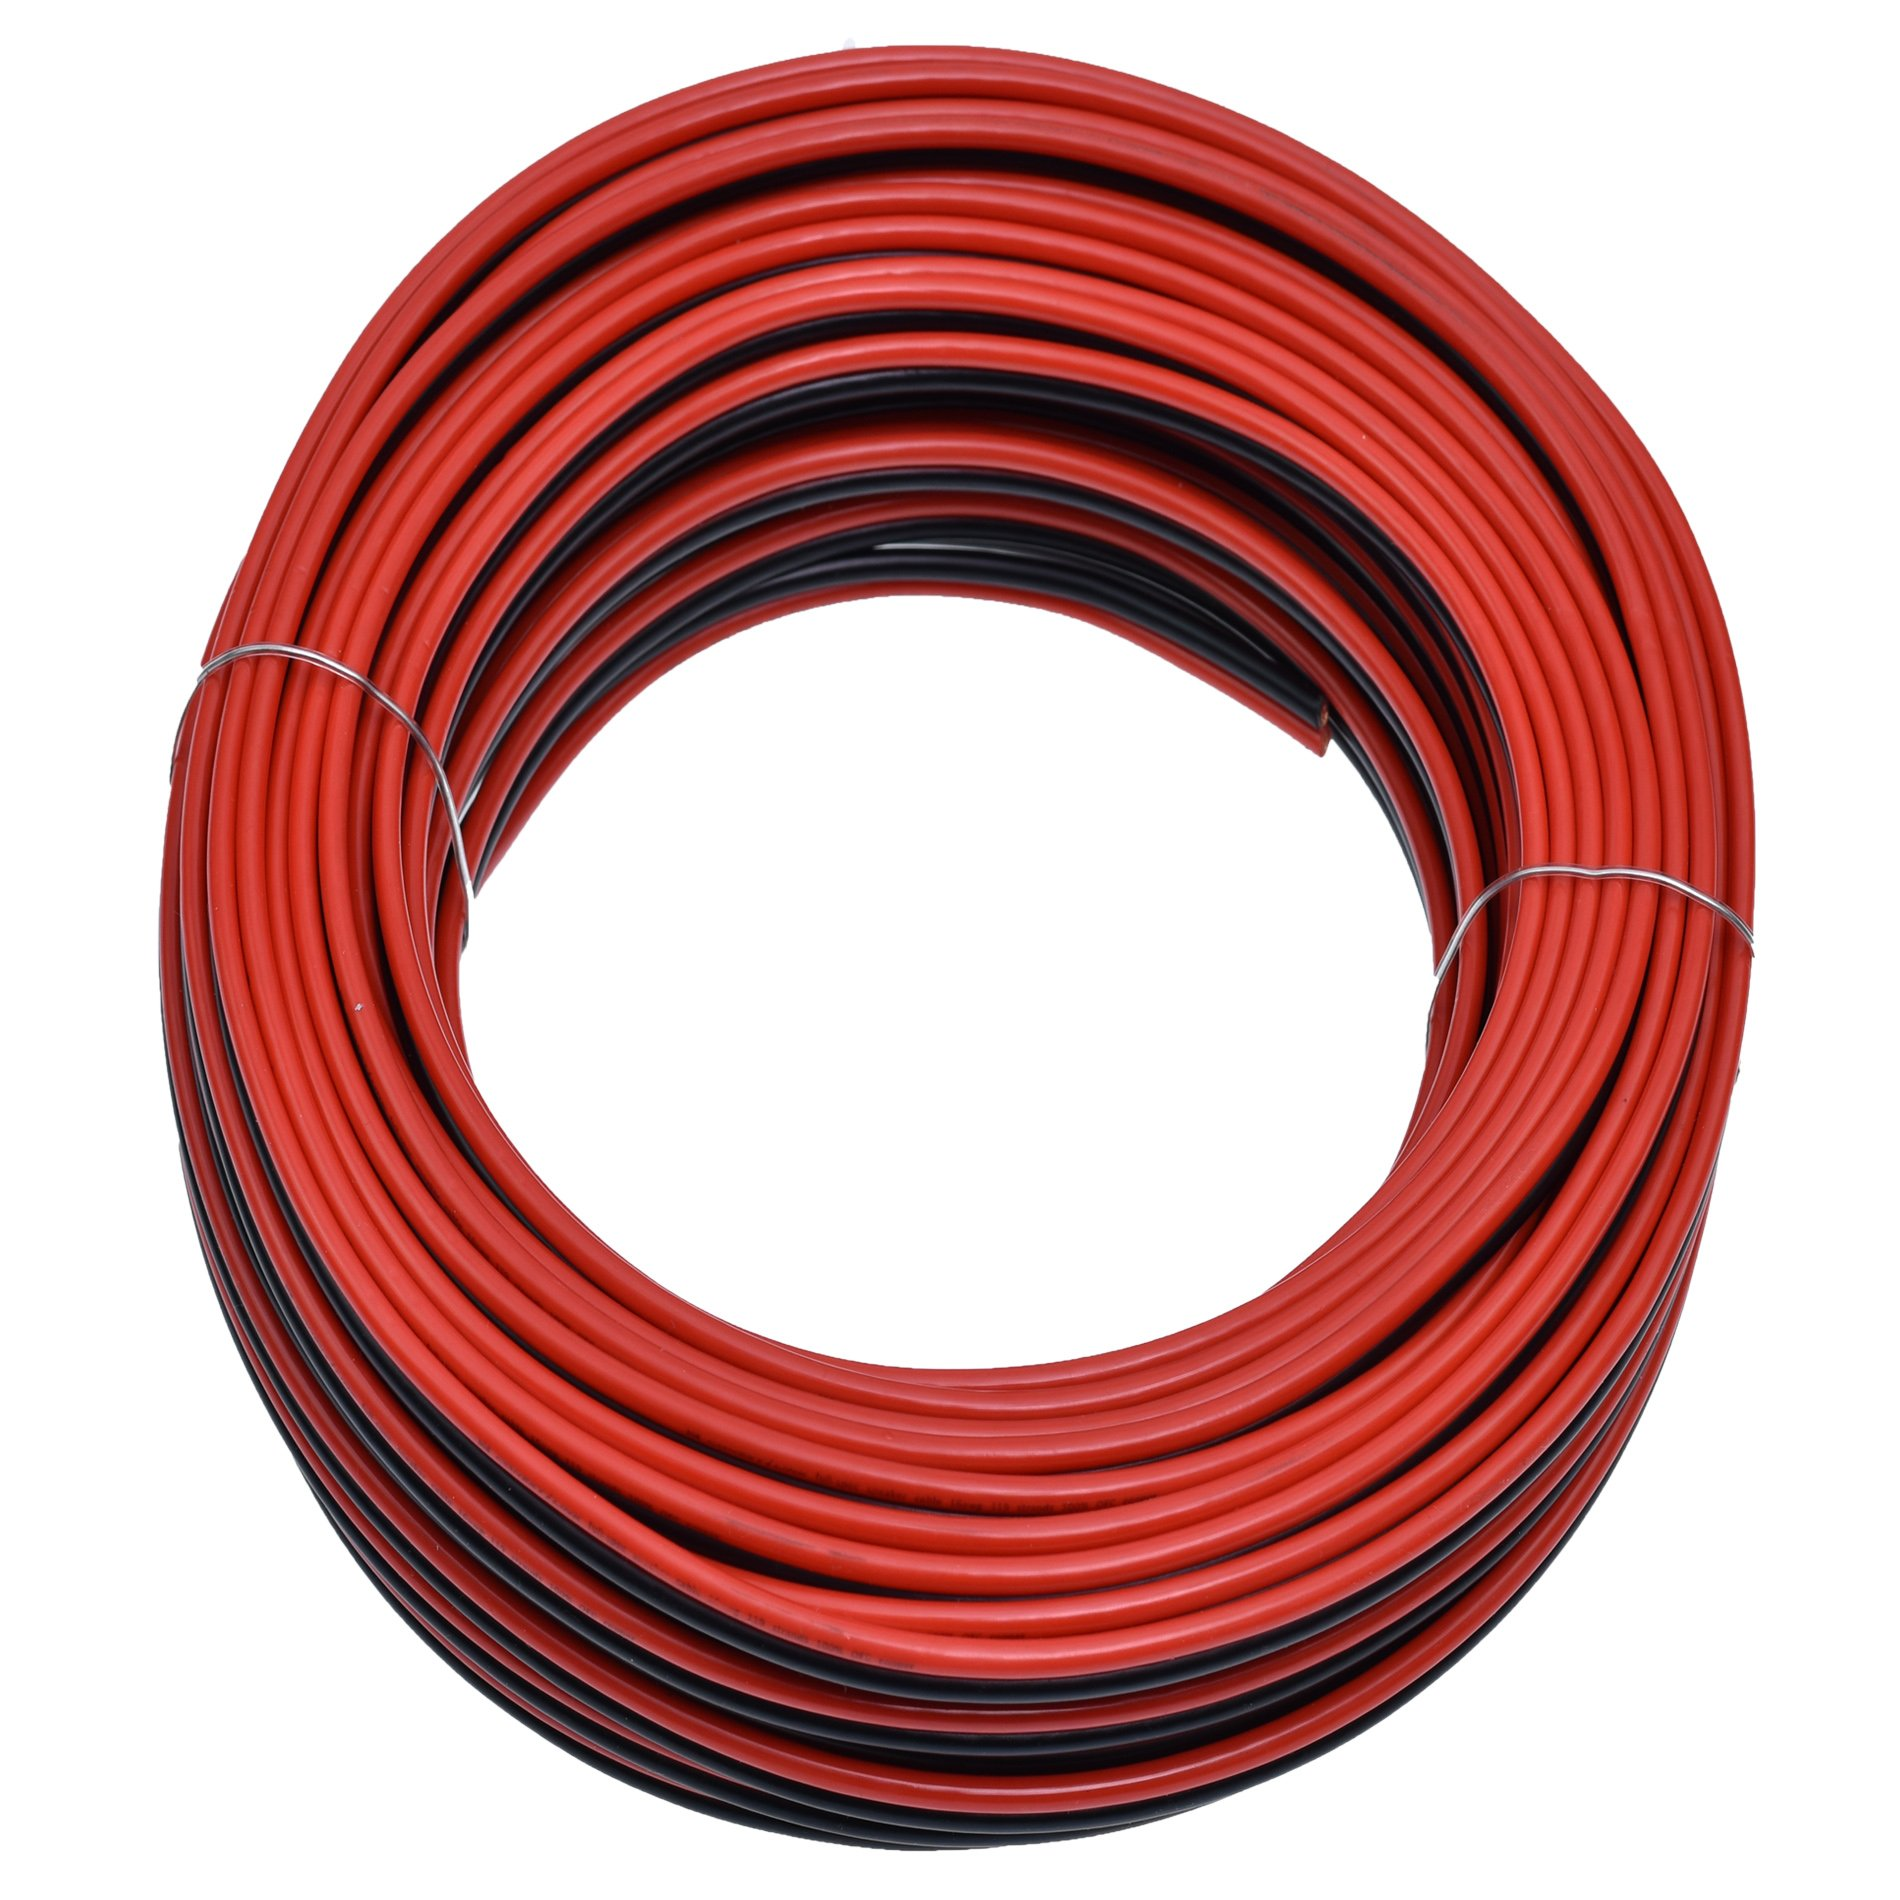 Conext Link PSC-RB Series Parallel Red Black Speaker Cables Full Gauge Oxygen Free Copper Zip Primary Wire (100 feet, 16 Gauge)